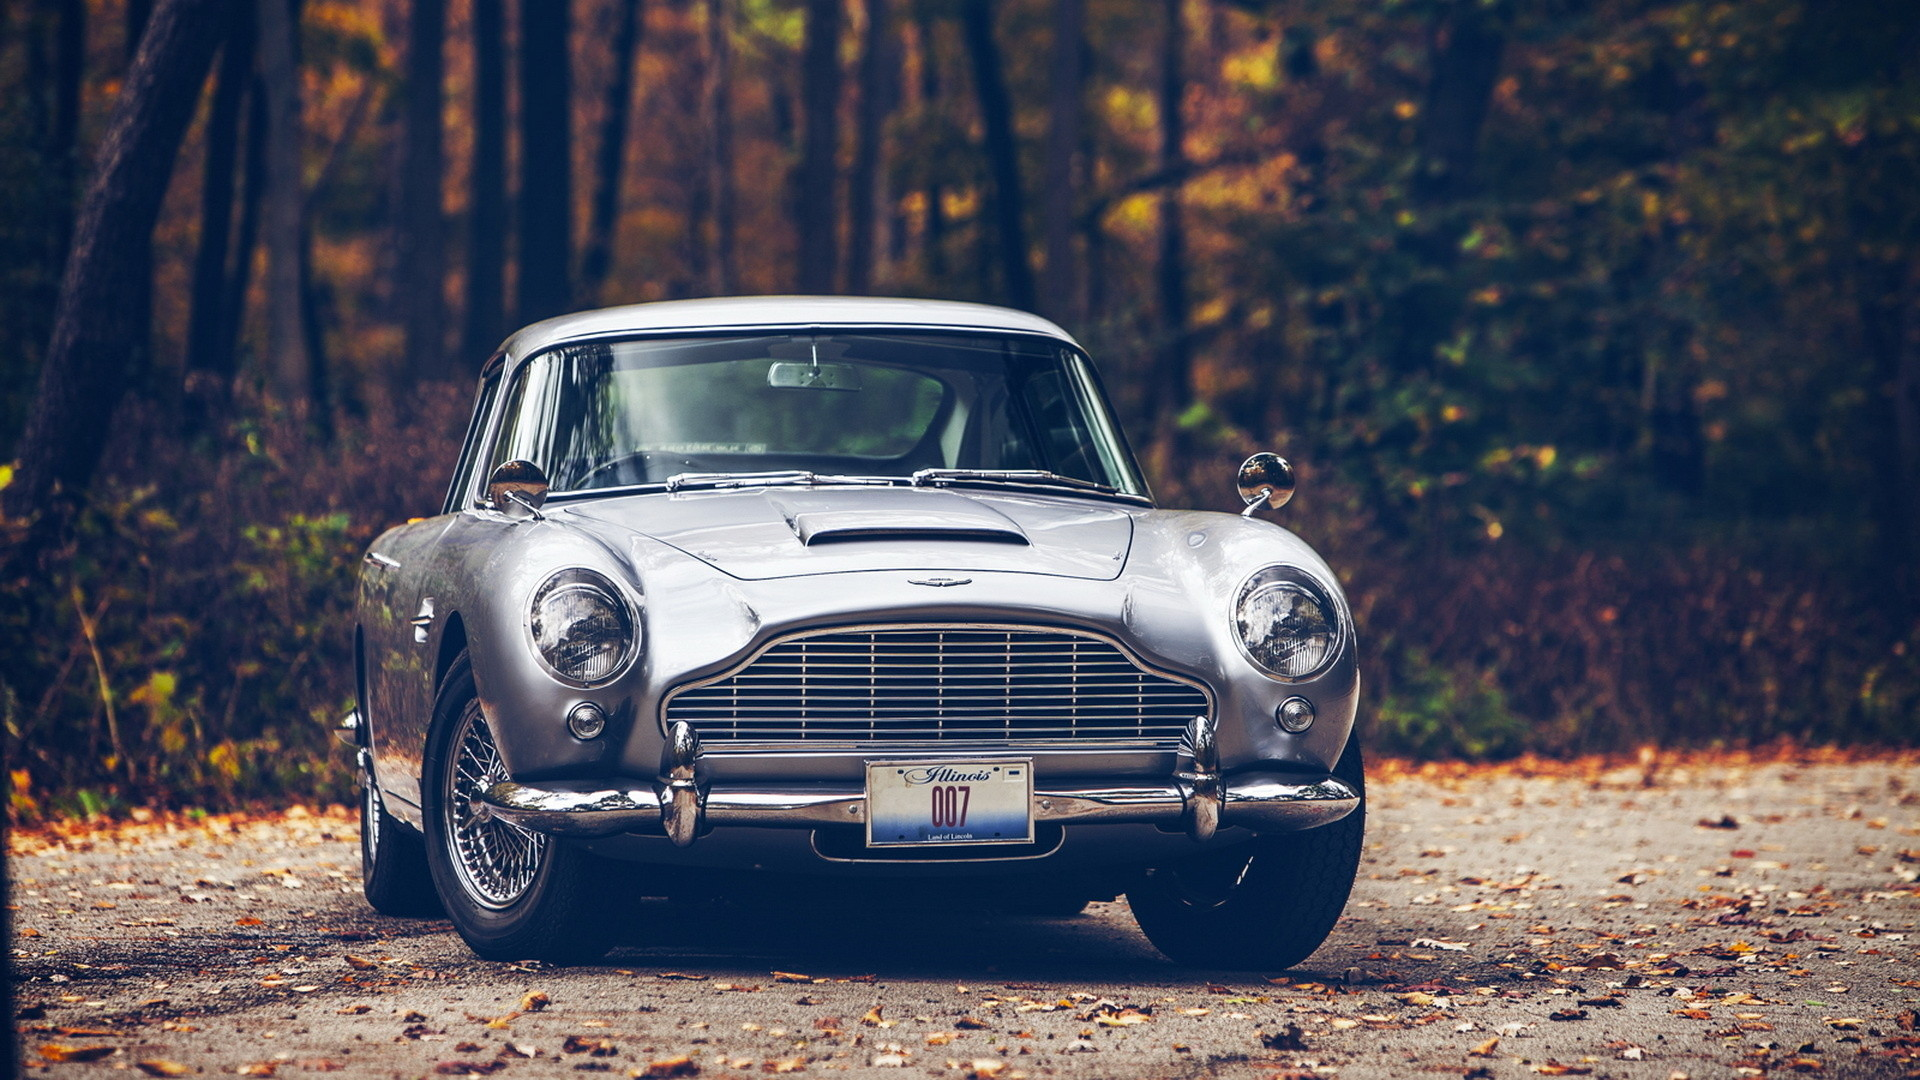 Preview wallpaper car, db5, aston martin 1920×1080